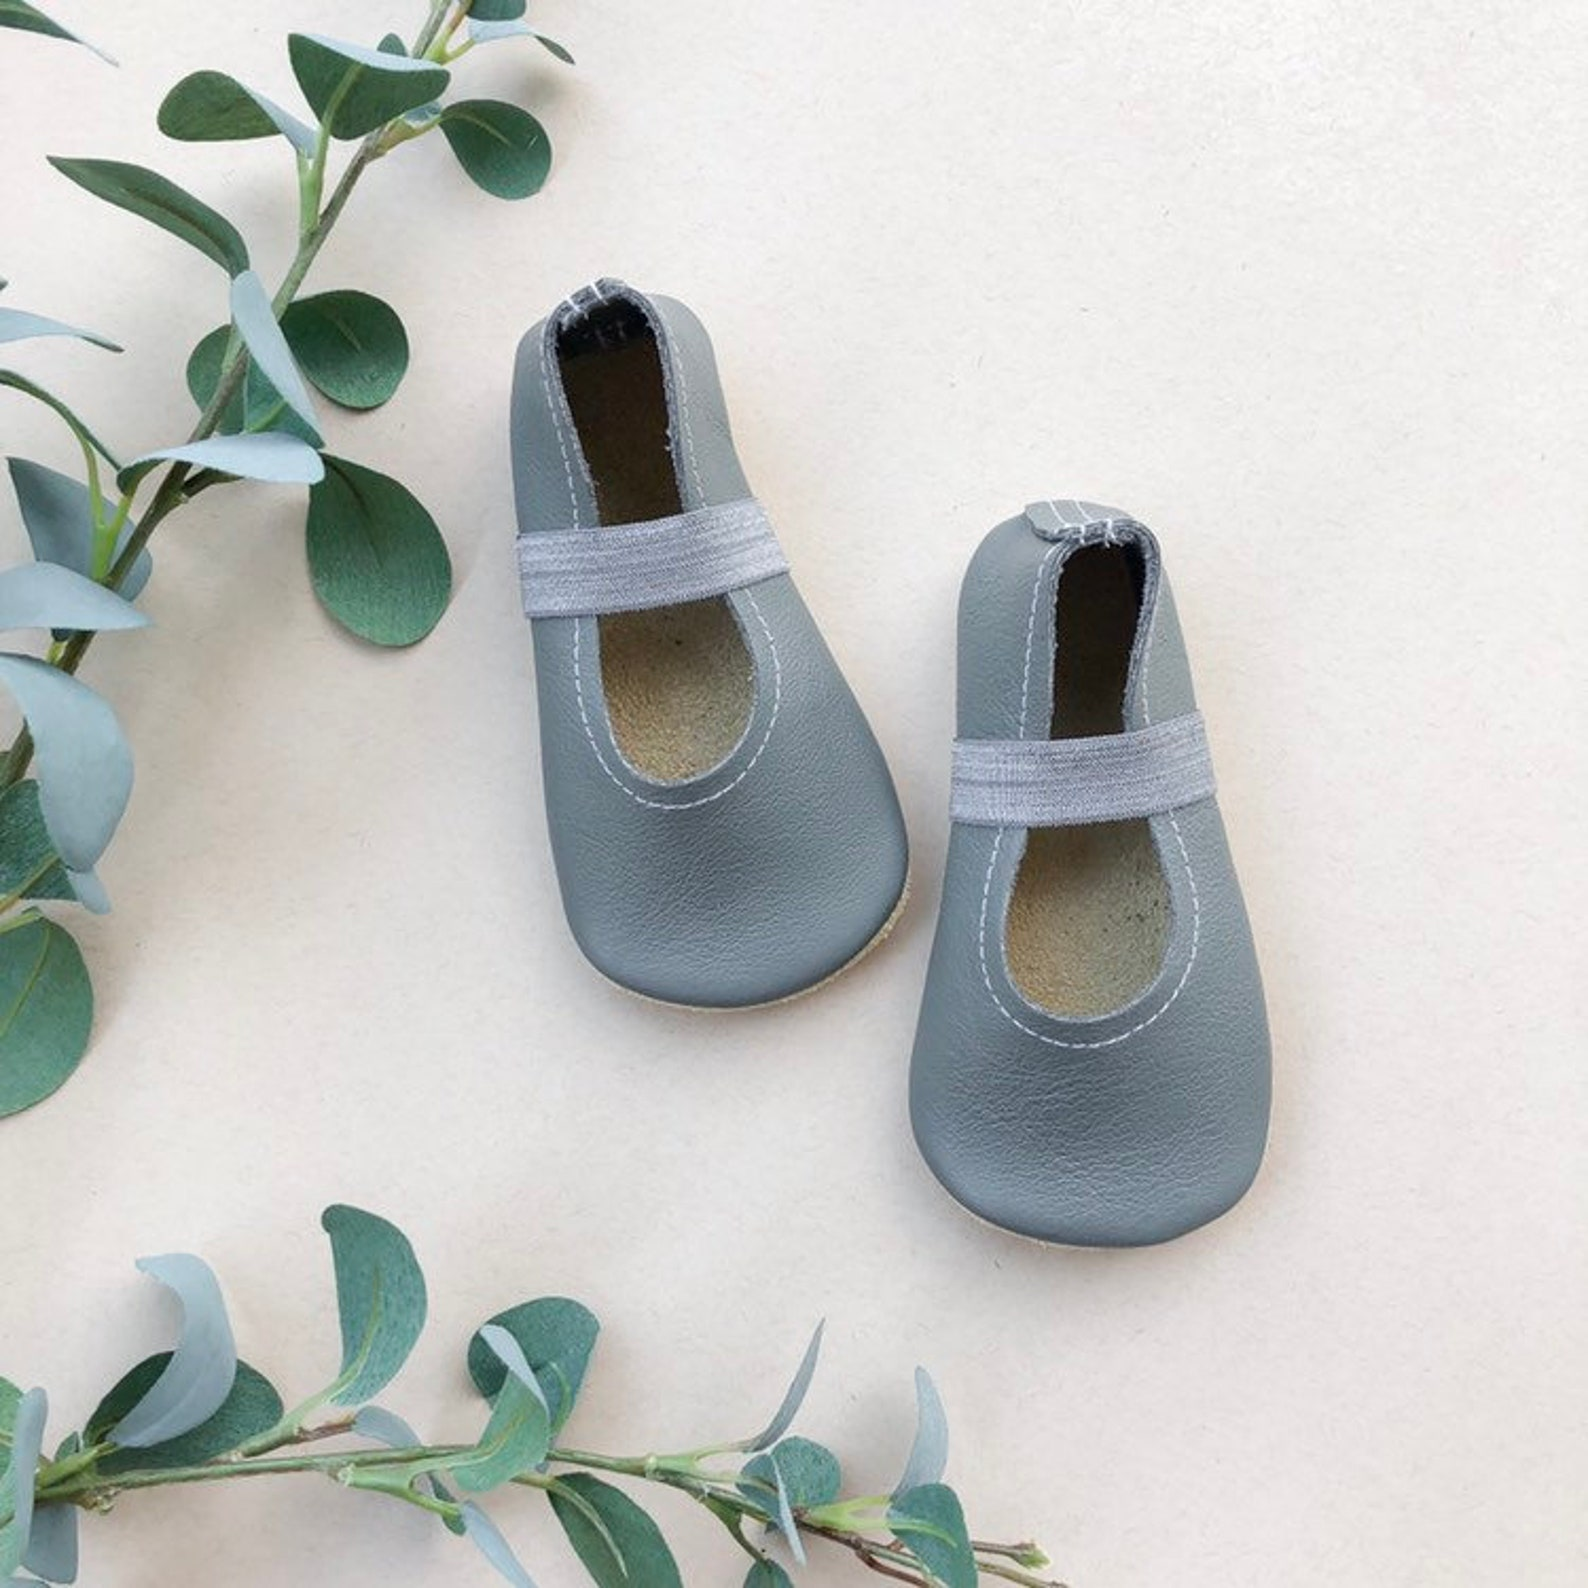 storm gray ballet flats - grey baby moccasins - genuine leather toddler shoes - neutral baby outfit